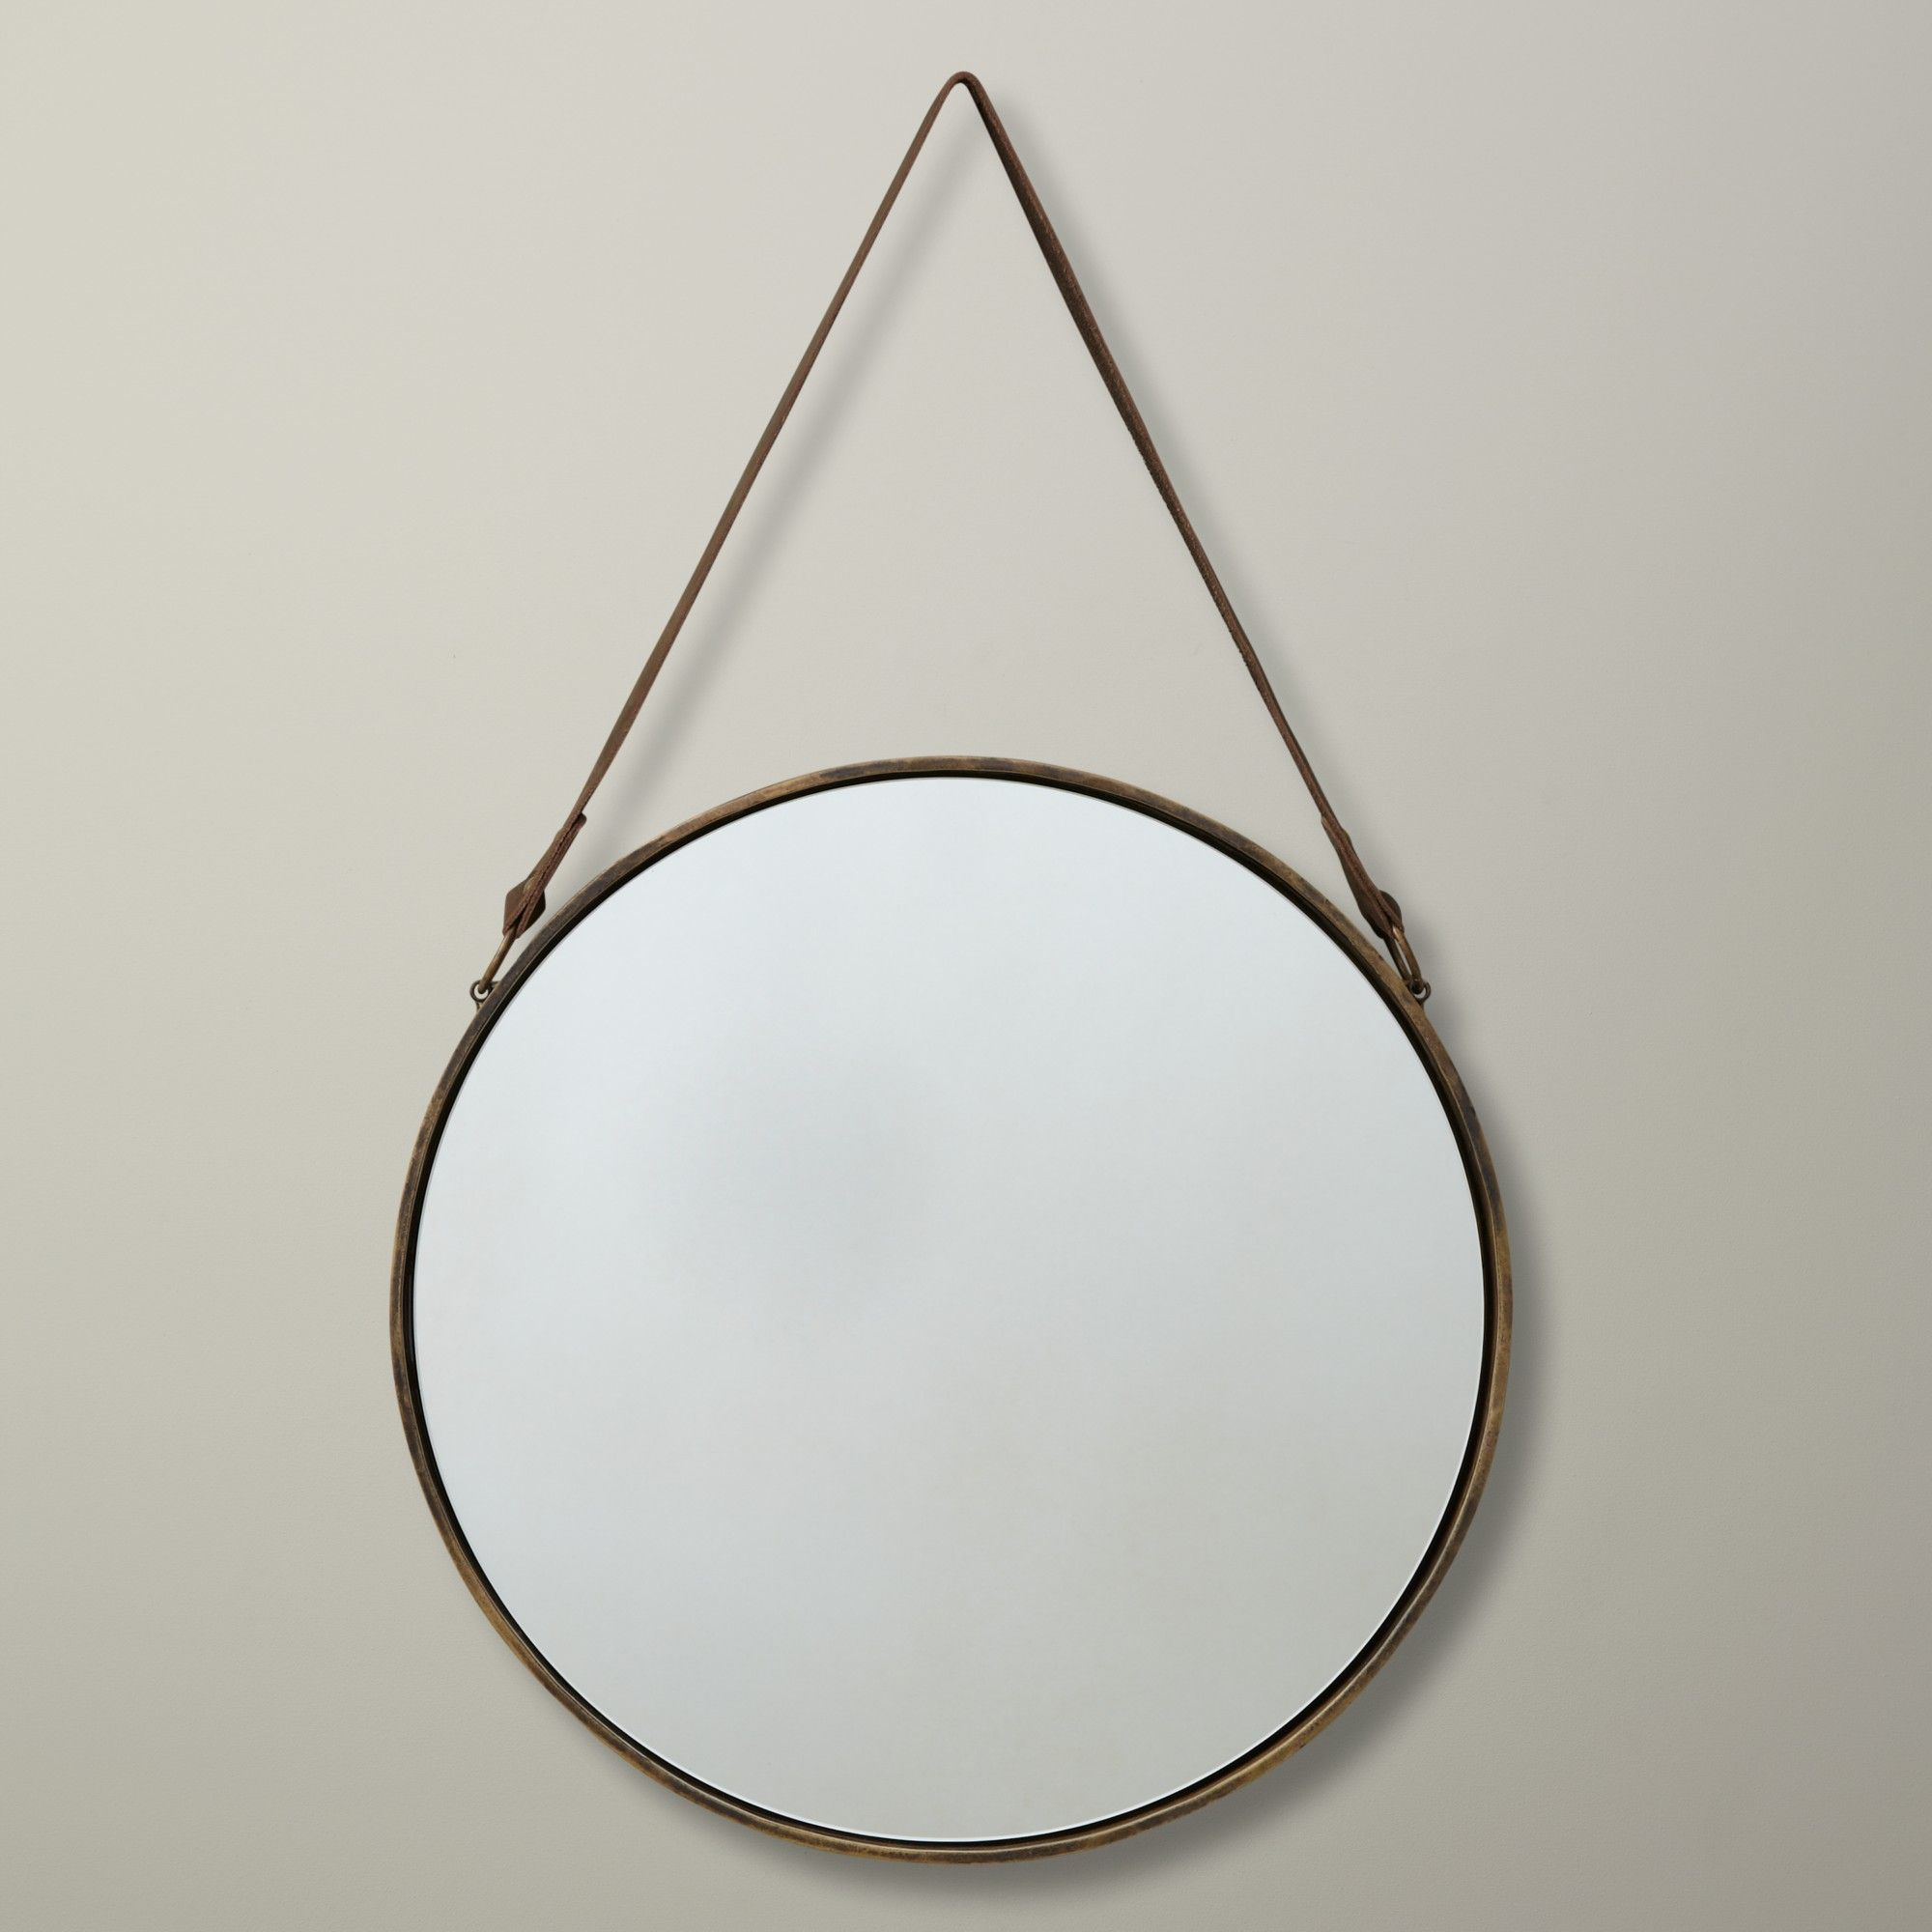 john lewis round hanging mirror matt brass. Black Bedroom Furniture Sets. Home Design Ideas